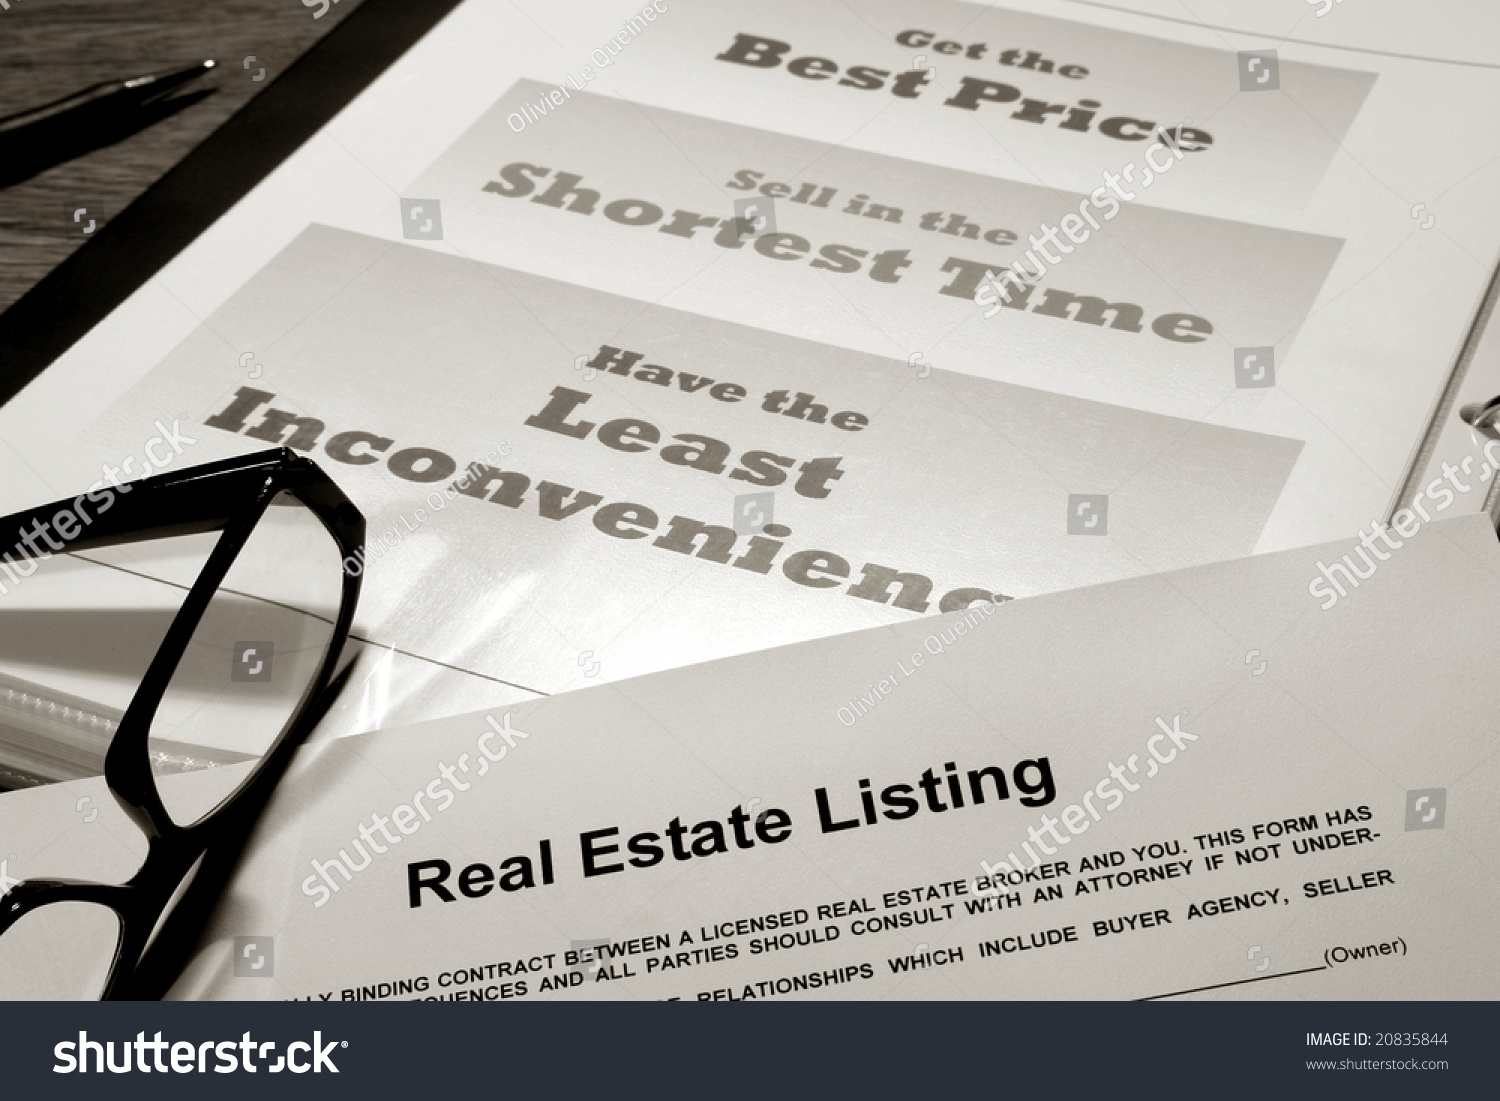 Real Estate Listing Contract Over Professional Realtor Agent Marketing And  Advertising Presentation Binder With House Sale